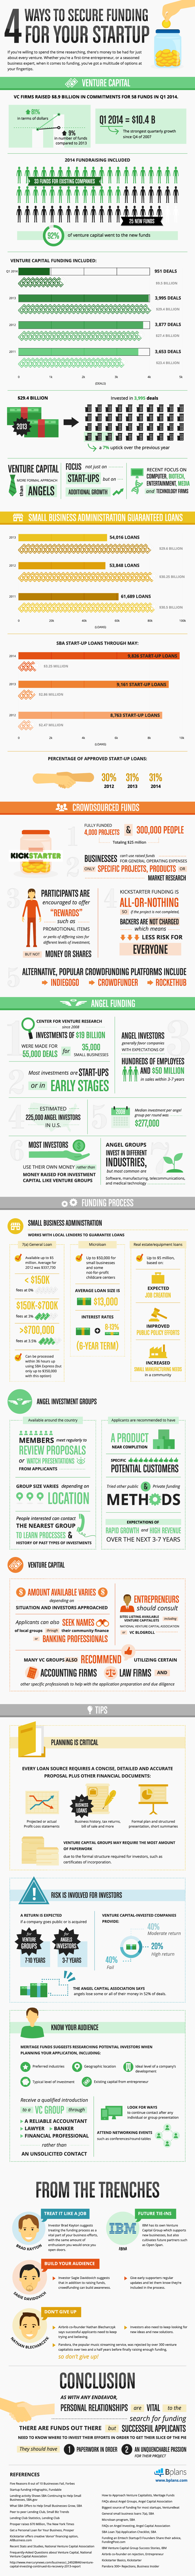 How To Secure Funding for Your Startup